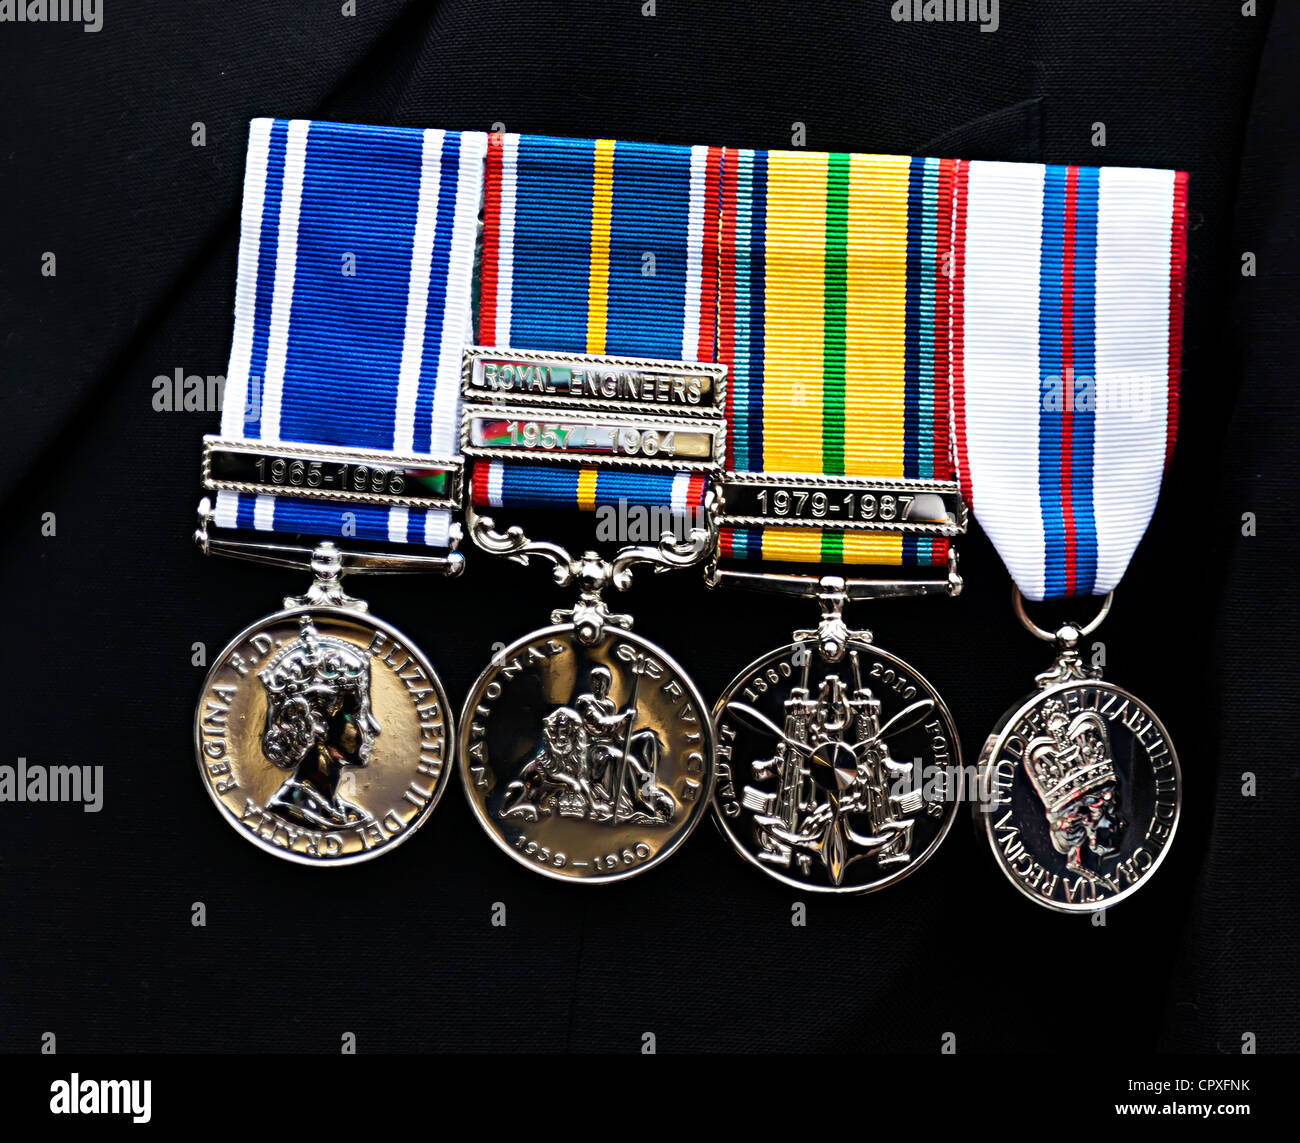 Royal Engineers service medals on dark suit, Wales, UK - Stock Image